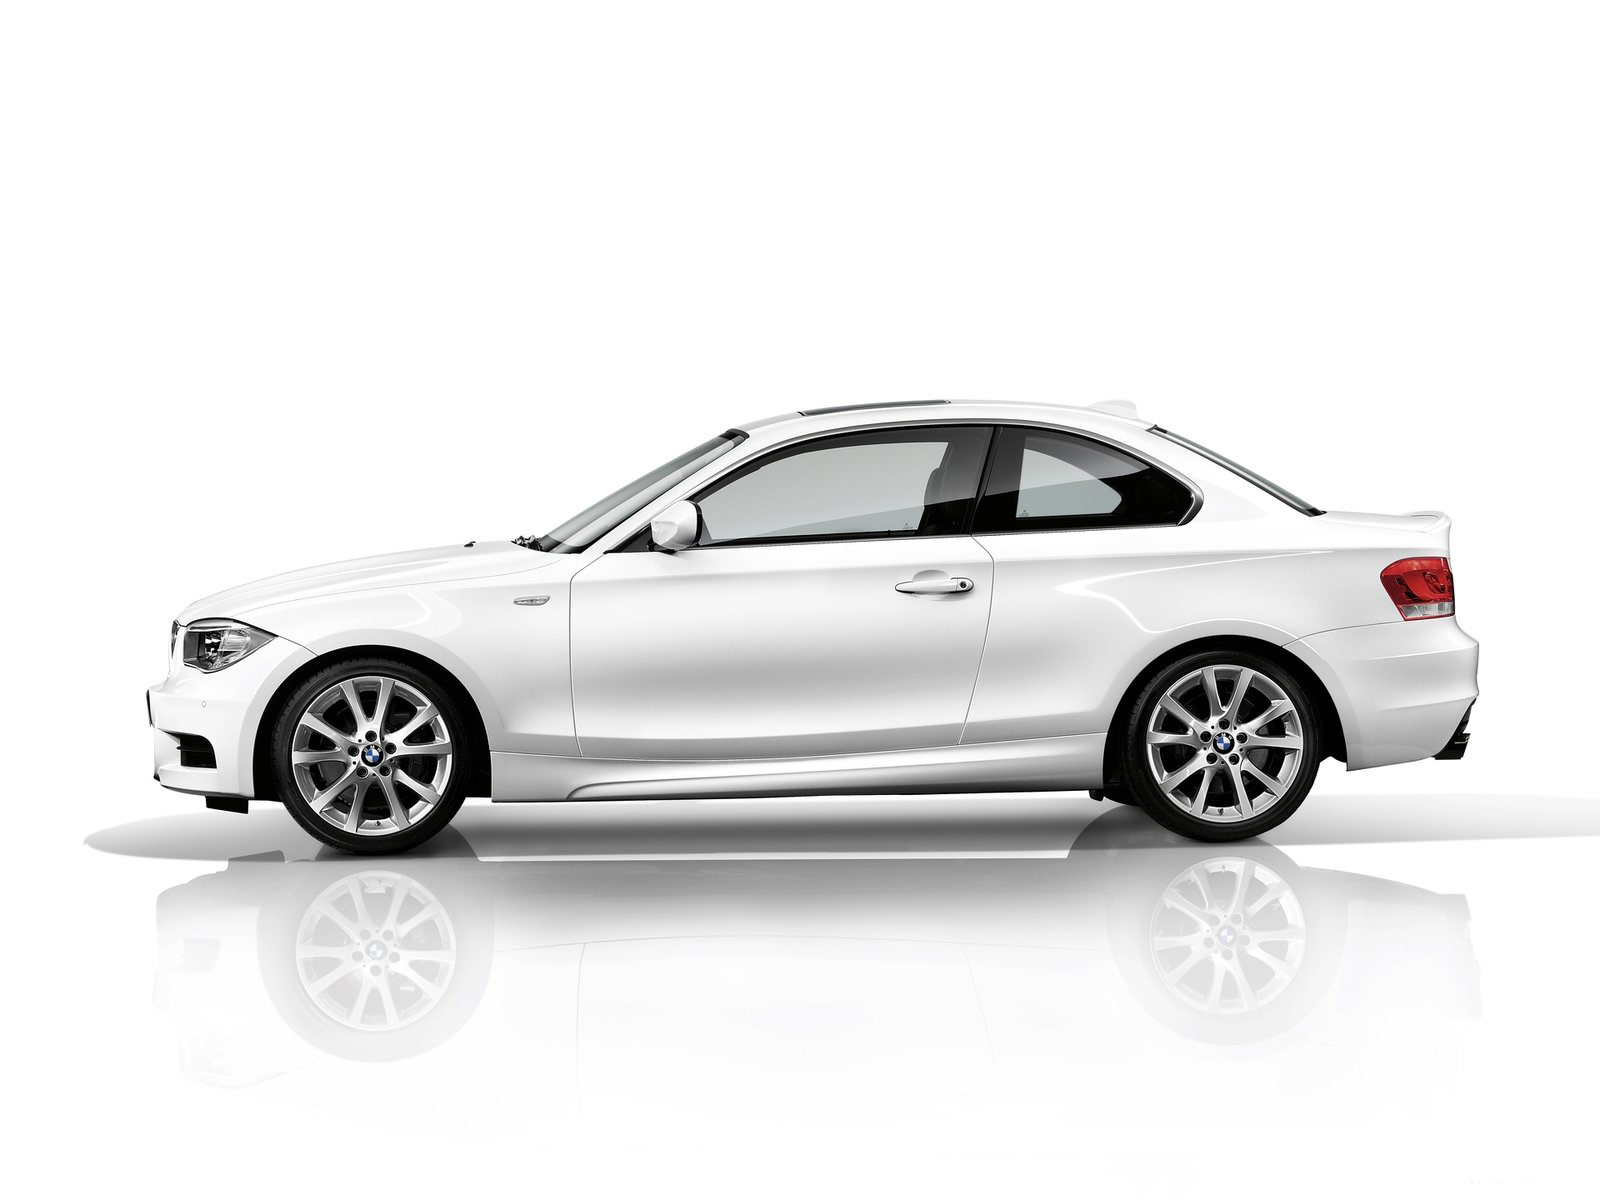 1 Series Saloon 2012 Bmw 1 Series Coupe Wallpapers Car Accident Lawyers Info